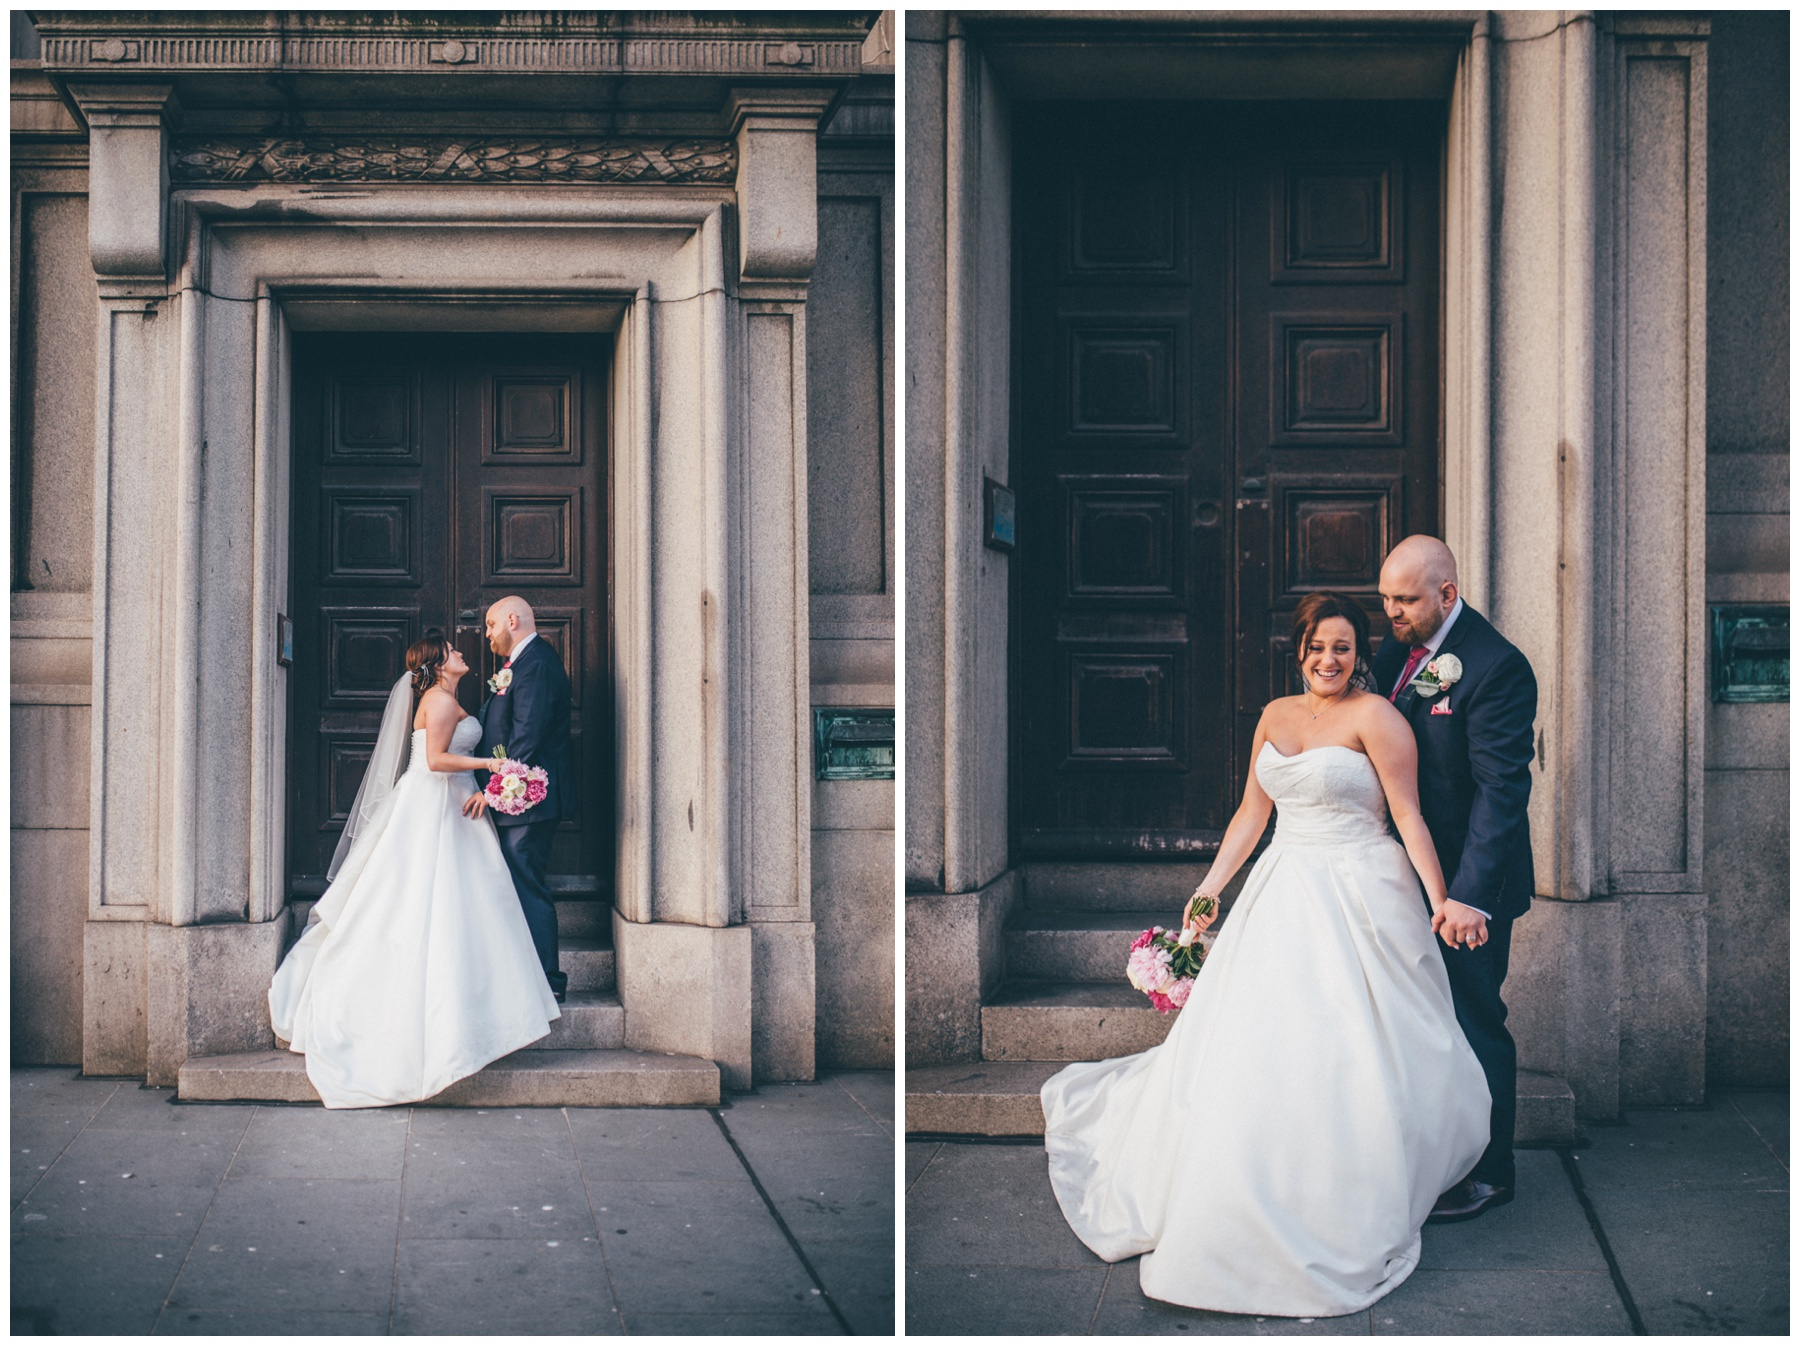 Bride and Groom at their Liverpool City centre wedding.